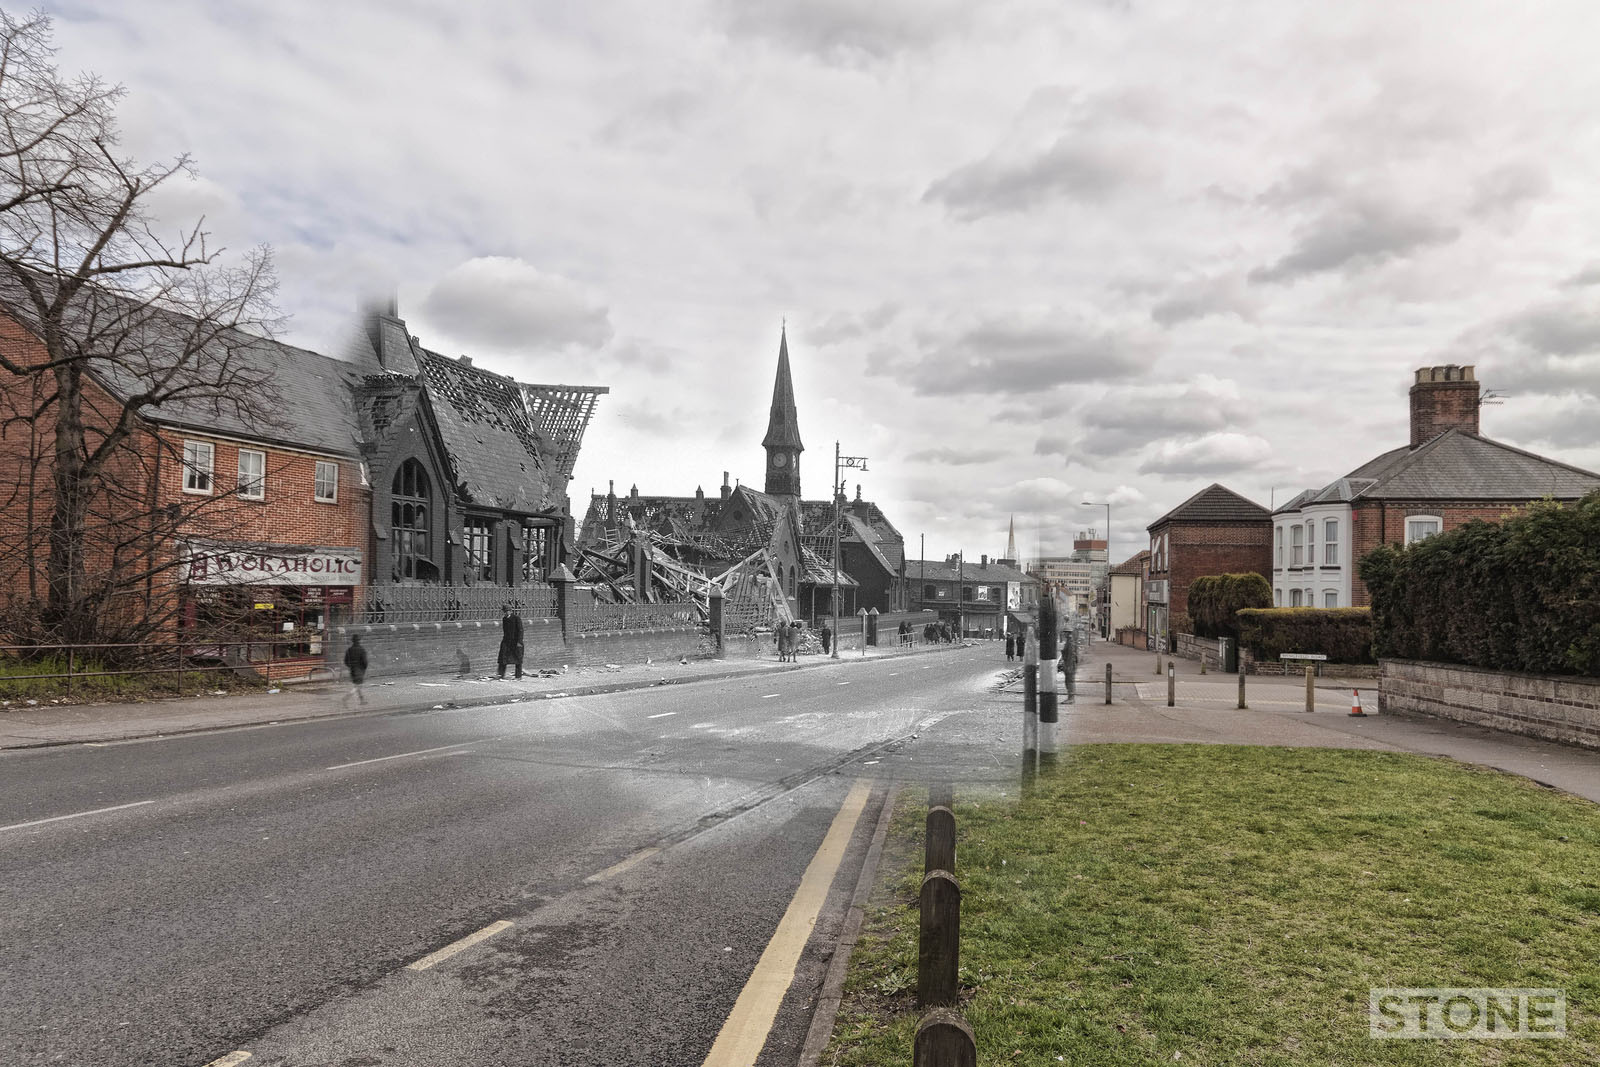 Rephotography: Ghosting history